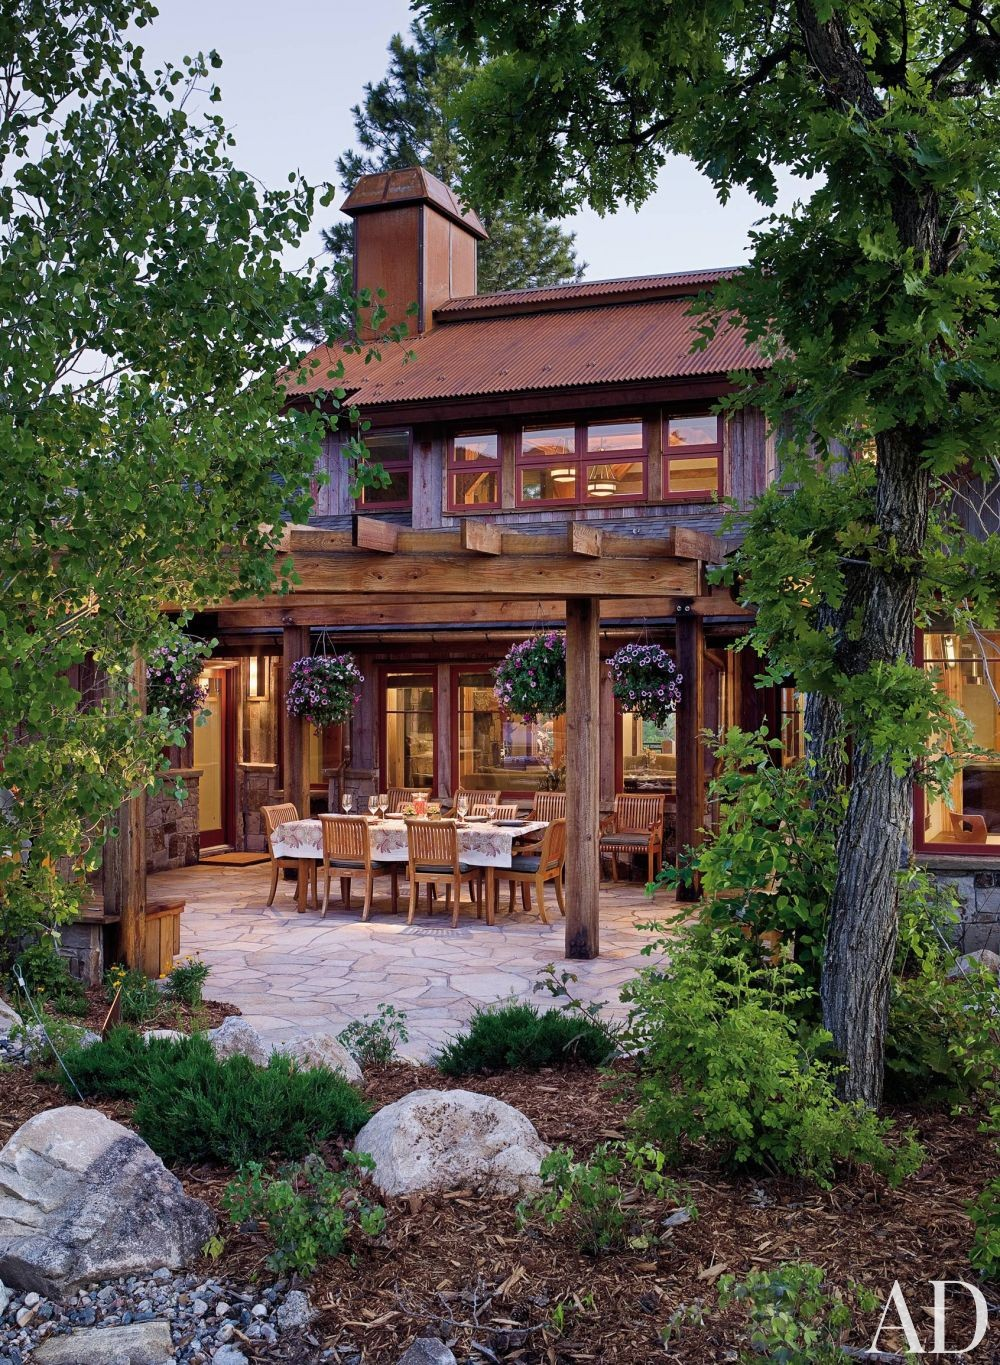 Rustic Outdoor Space by Trilogy Partners and Trilogy Partners in Steamboat Springs, Colorado